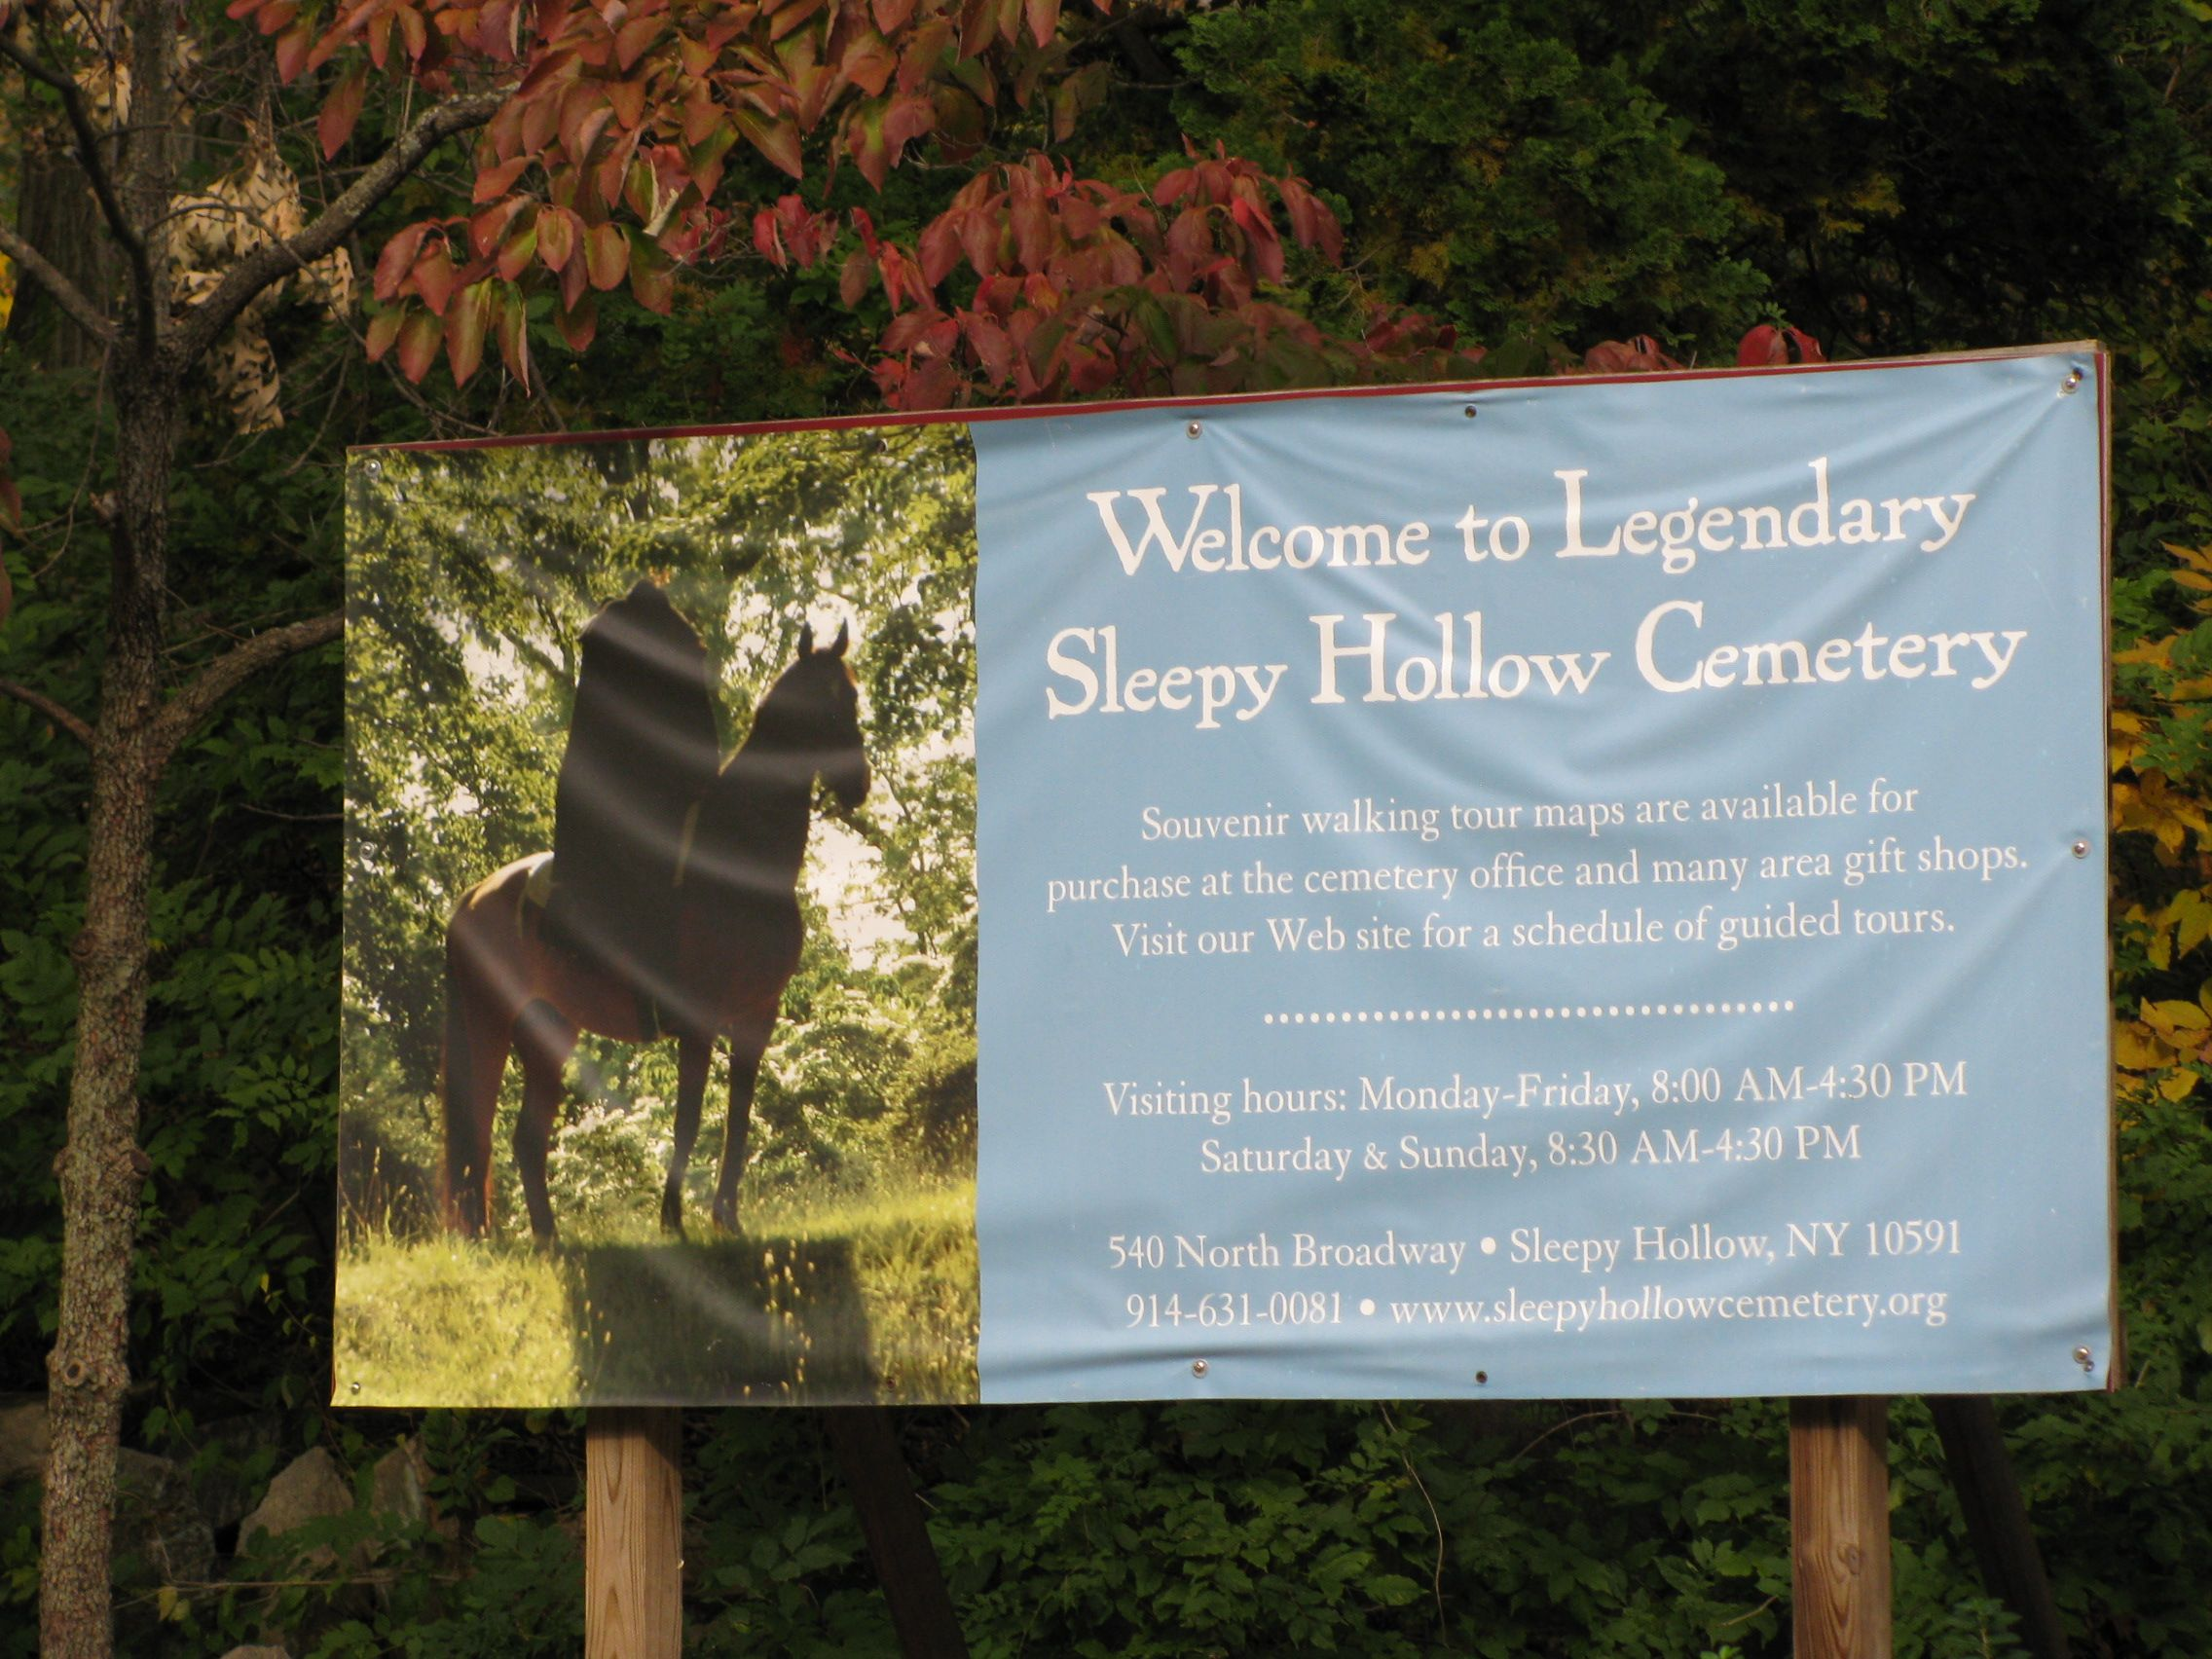 Sleepy Hollow Cemetery tours...a must have if you are going to visit Sleepy Hollow.